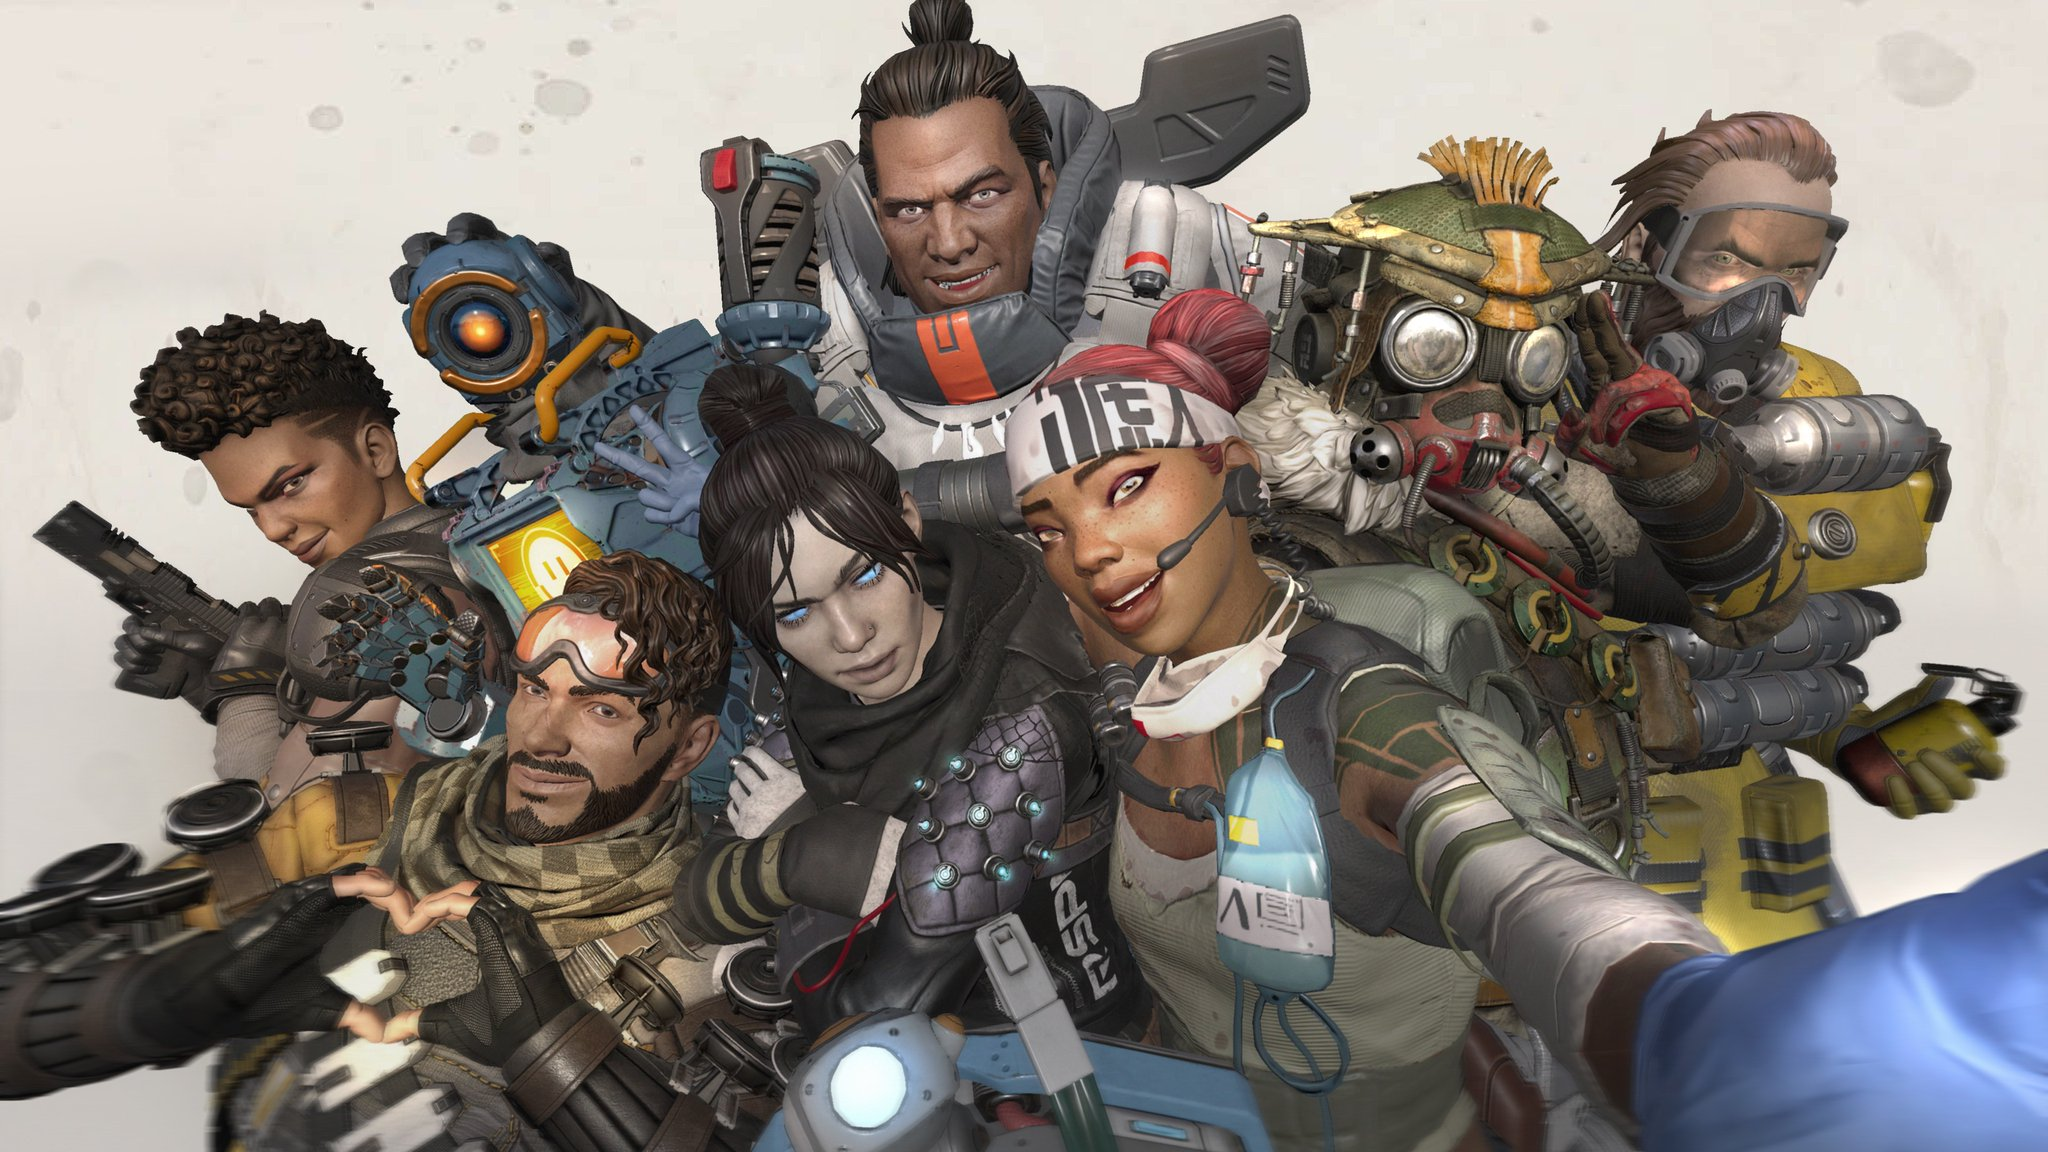 Best Apex Legends characters - who are the best characters to play